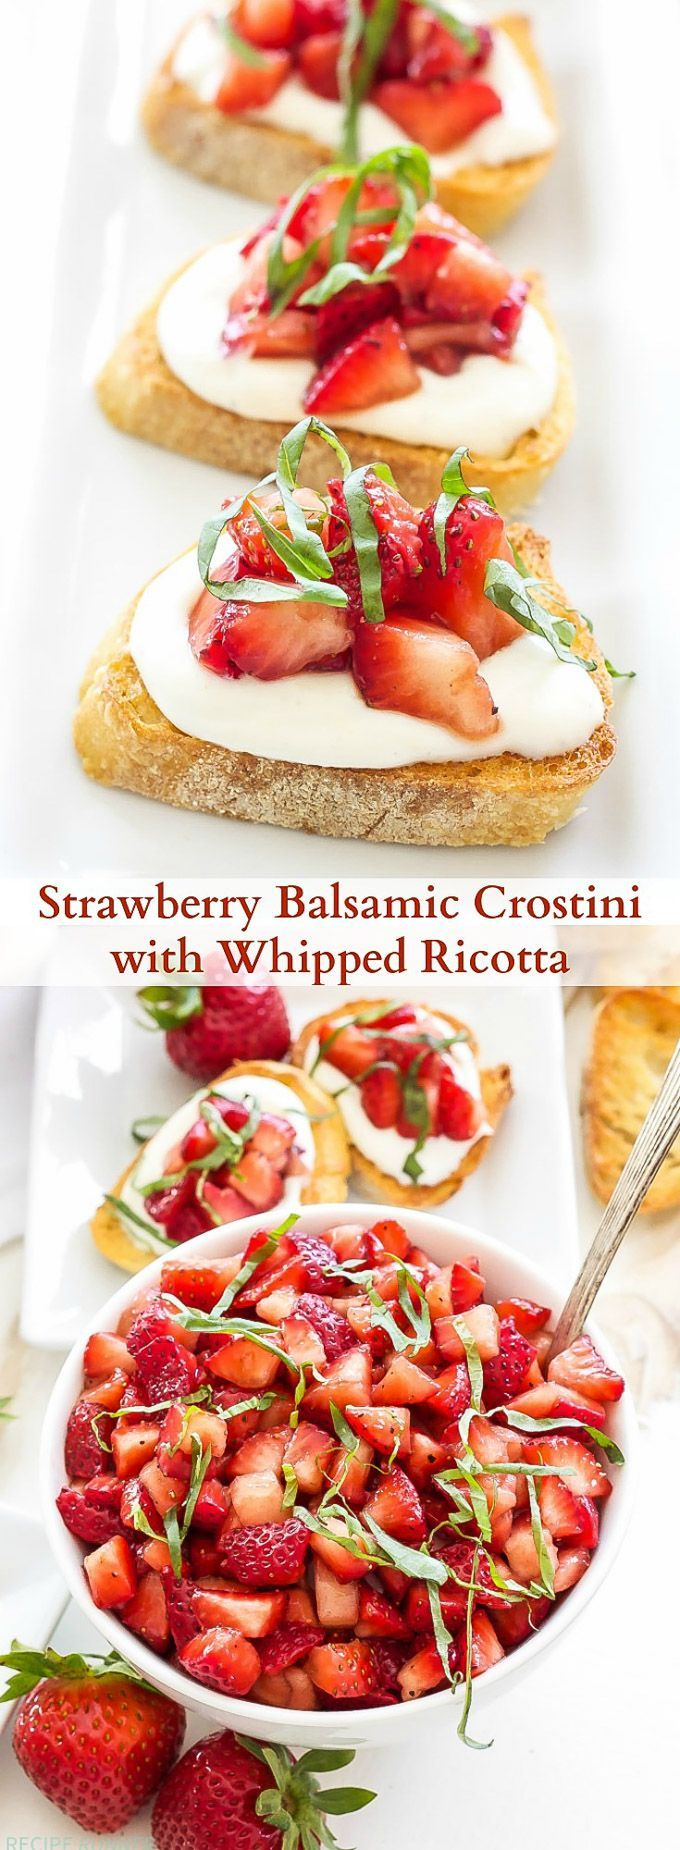 Strawberry Balsamic Crostini with Whipped Ricotta | Sweet and savory Strawberry Balsamic Crostini with Whipped Ricotta is the perfect summery crostini to serve as an appetizer or small bite at your next brunch or party!